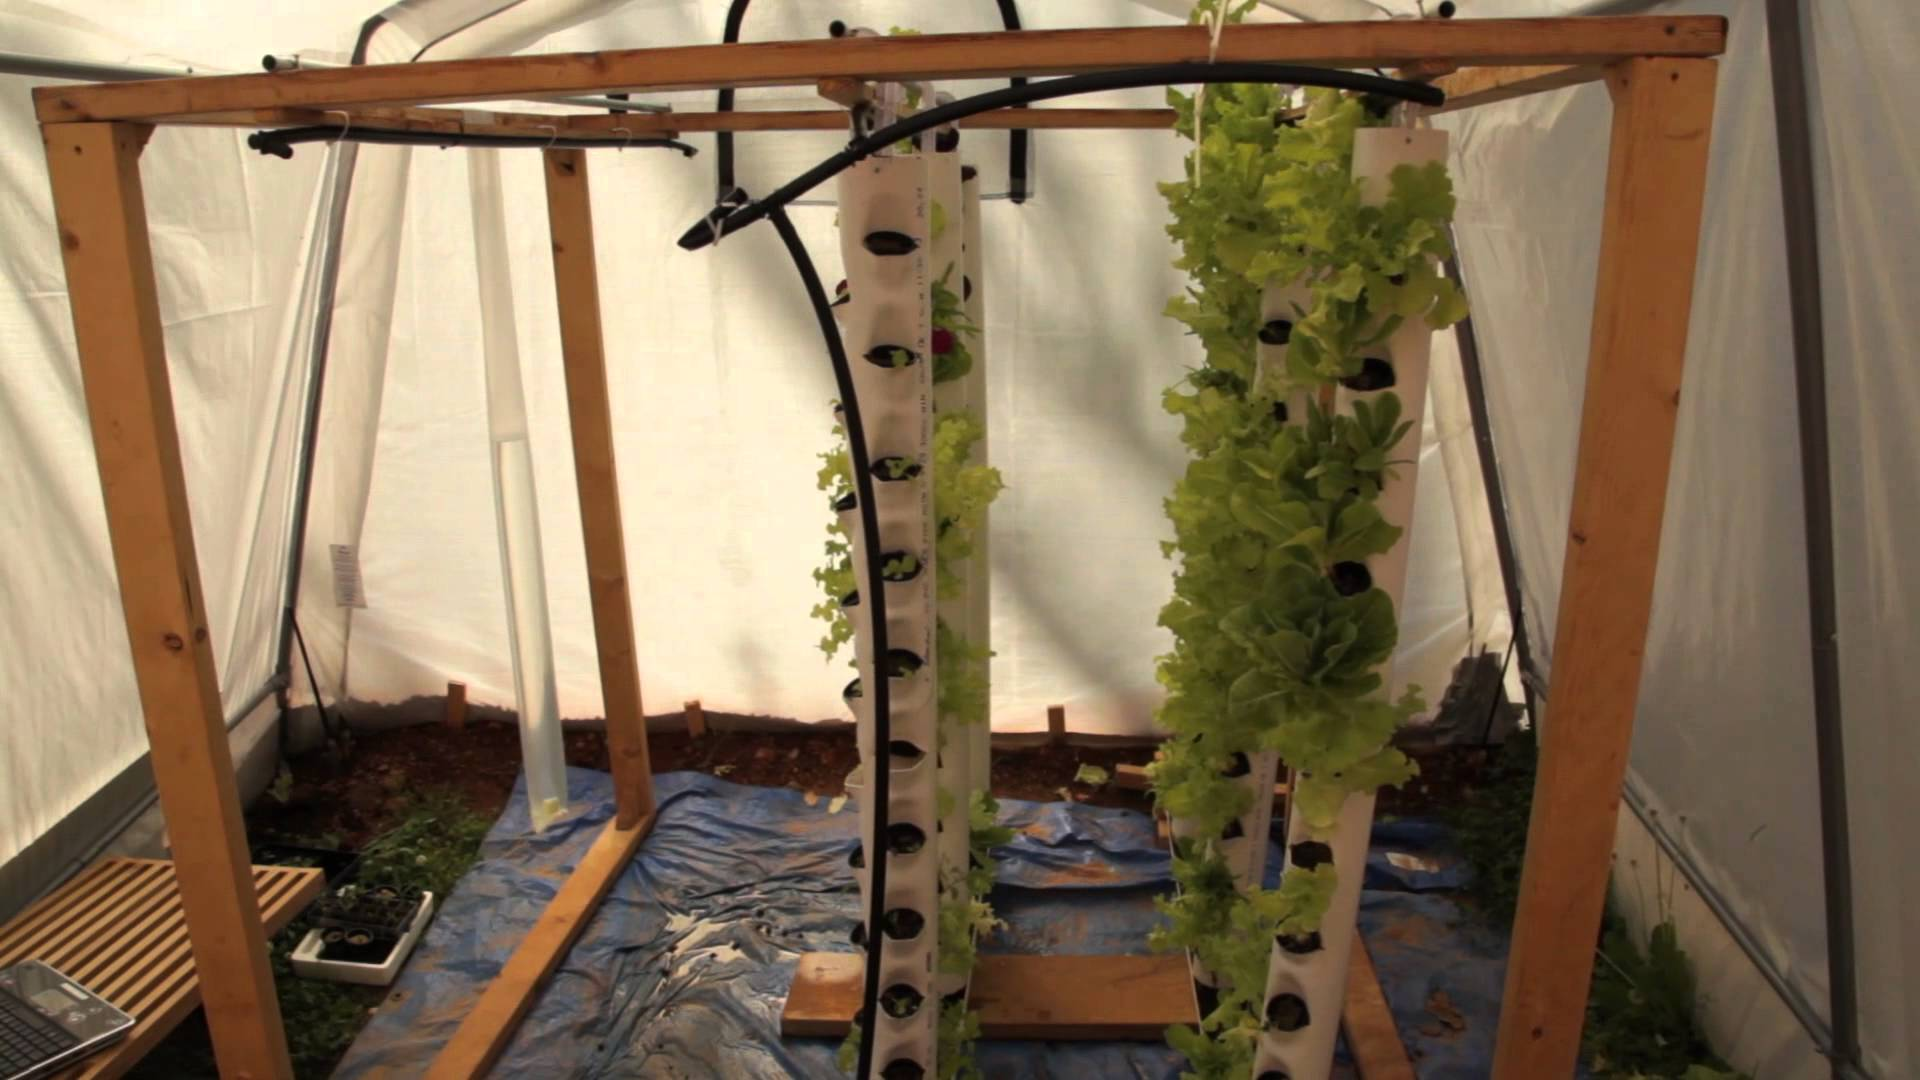 How To Build A Vertical Growing Tower For Aquaponics Or ...